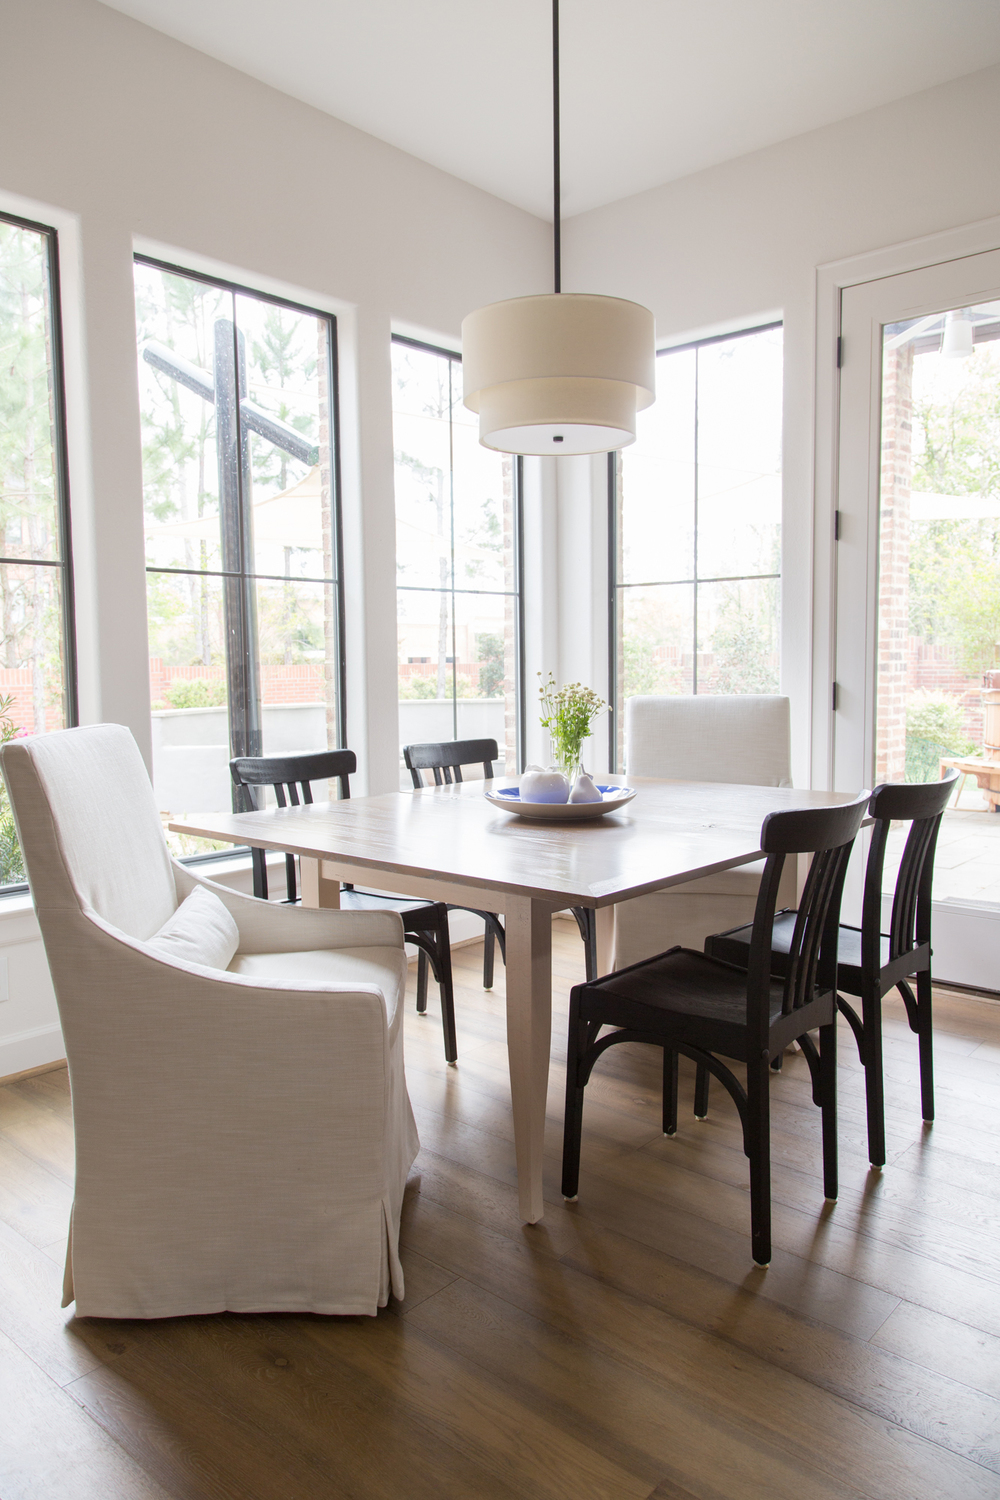 breakfast room table; chair; wood flooring; lighting | Interior Designer: Carla Aston / Photographer: Tori Aston